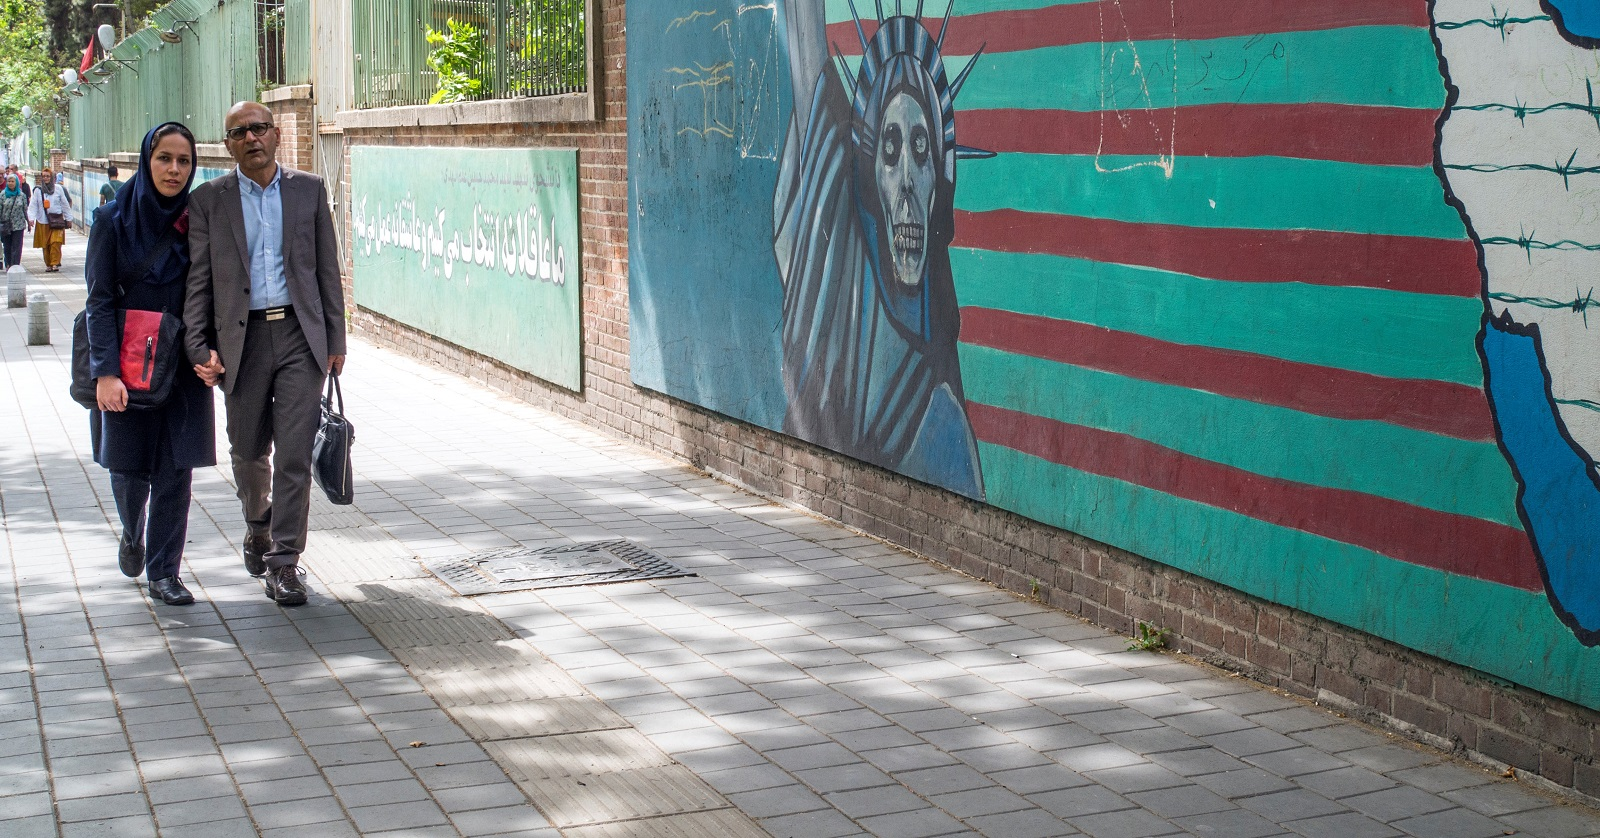 Pedestrians walk past a painting of the Statue of Liberty as a skeleton outside the former American embassy in Tehran. (Photo by Leisa Tyler/Getty Images)